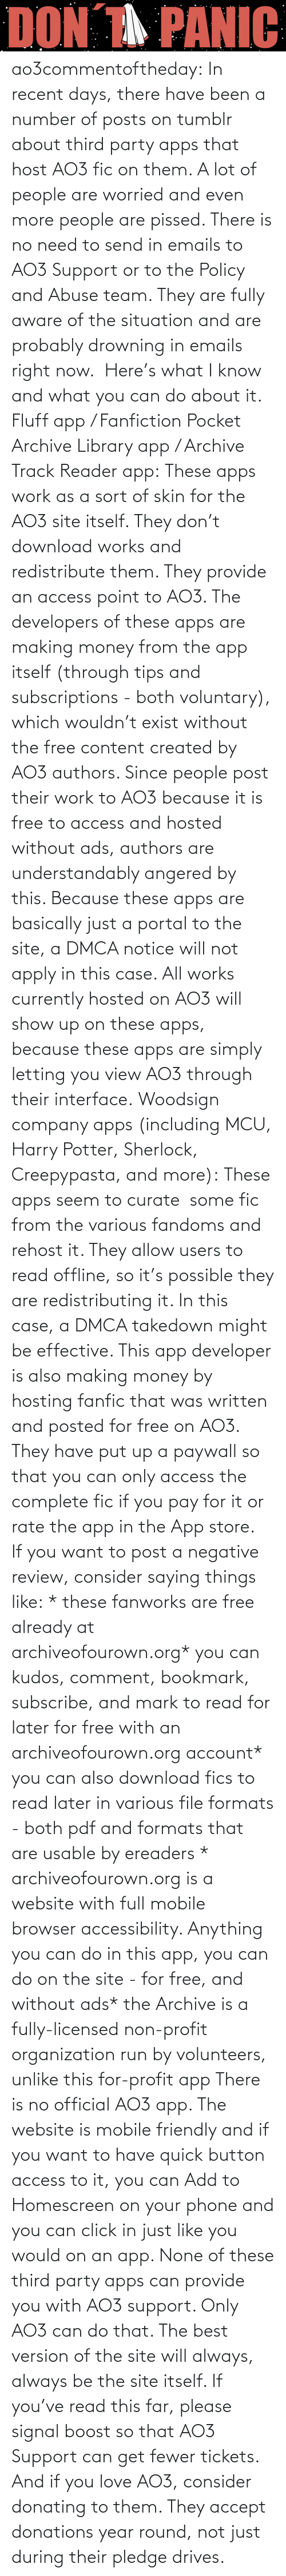 Click, Fanfiction, and Harry Potter: ao3commentoftheday: In recent days, there have been a number of posts on tumblr about third party apps that host AO3 fic on them. A lot of people are worried and even more people are pissed.  There is no need to send in emails to AO3 Support or to the Policy and Abuse team. They are fully aware of the situation and are probably drowning in emails right now.  Here's what I know and what you can do about it.  Fluff app / Fanfiction Pocket Archive Library app / Archive Track Reader app: These apps work as a sort of skin for the AO3 site itself. They don't download works and redistribute them. They provide an access point to AO3.  The developers of these apps are making money from the app itself (through tips and subscriptions - both voluntary), which wouldn't exist without the free content created by AO3 authors. Since people post their work to AO3 because it is free to access and hosted without ads, authors are understandably angered by this.  Because these apps are basically just a portal to the site, a DMCA notice will not apply in this case. All works currently hosted on AO3 will show up on these apps, because these apps are simply letting you view AO3 through their interface. Woodsign company apps (including MCU, Harry Potter, Sherlock, Creepypasta, and more): These apps seem to curate  some fic from the various fandoms and rehost it. They allow users to read offline, so it's possible they are redistributing it. In this case, a DMCA takedown might be effective.  This app developer is also making money by hosting fanfic that was written and posted for free on AO3. They have put up a paywall so that you can only access the complete fic if you pay for it or rate the app in the App store.  If you want to post a negative review, consider saying things like: * these fanworks are free already at archiveofourown.org* you can kudos, comment, bookmark, subscribe, and mark to read for later for free with an archiveofourown.org account* you can also download fics to read later in various file formats - both pdf and formats that are usable by ereaders * archiveofourown.org is a website with full mobile browser accessibility. Anything you can do in this app, you can do on the site - for free, and without ads* the Archive is a fully-licensed non-profit organization run by volunteers, unlike this for-profit app  There is no official AO3 app. The website is mobile friendly and if you want to have quick button access to it, you can Add to Homescreen on your phone and you can click in just like you would on an app. None of these third party apps can provide you with AO3 support. Only AO3 can do that. The best version of the site will always, always be the site itself.  If you've read this far, please signal boost so that AO3 Support can get fewer tickets. And if you love AO3, consider donating to them. They accept donations year round, not just during their pledge drives.